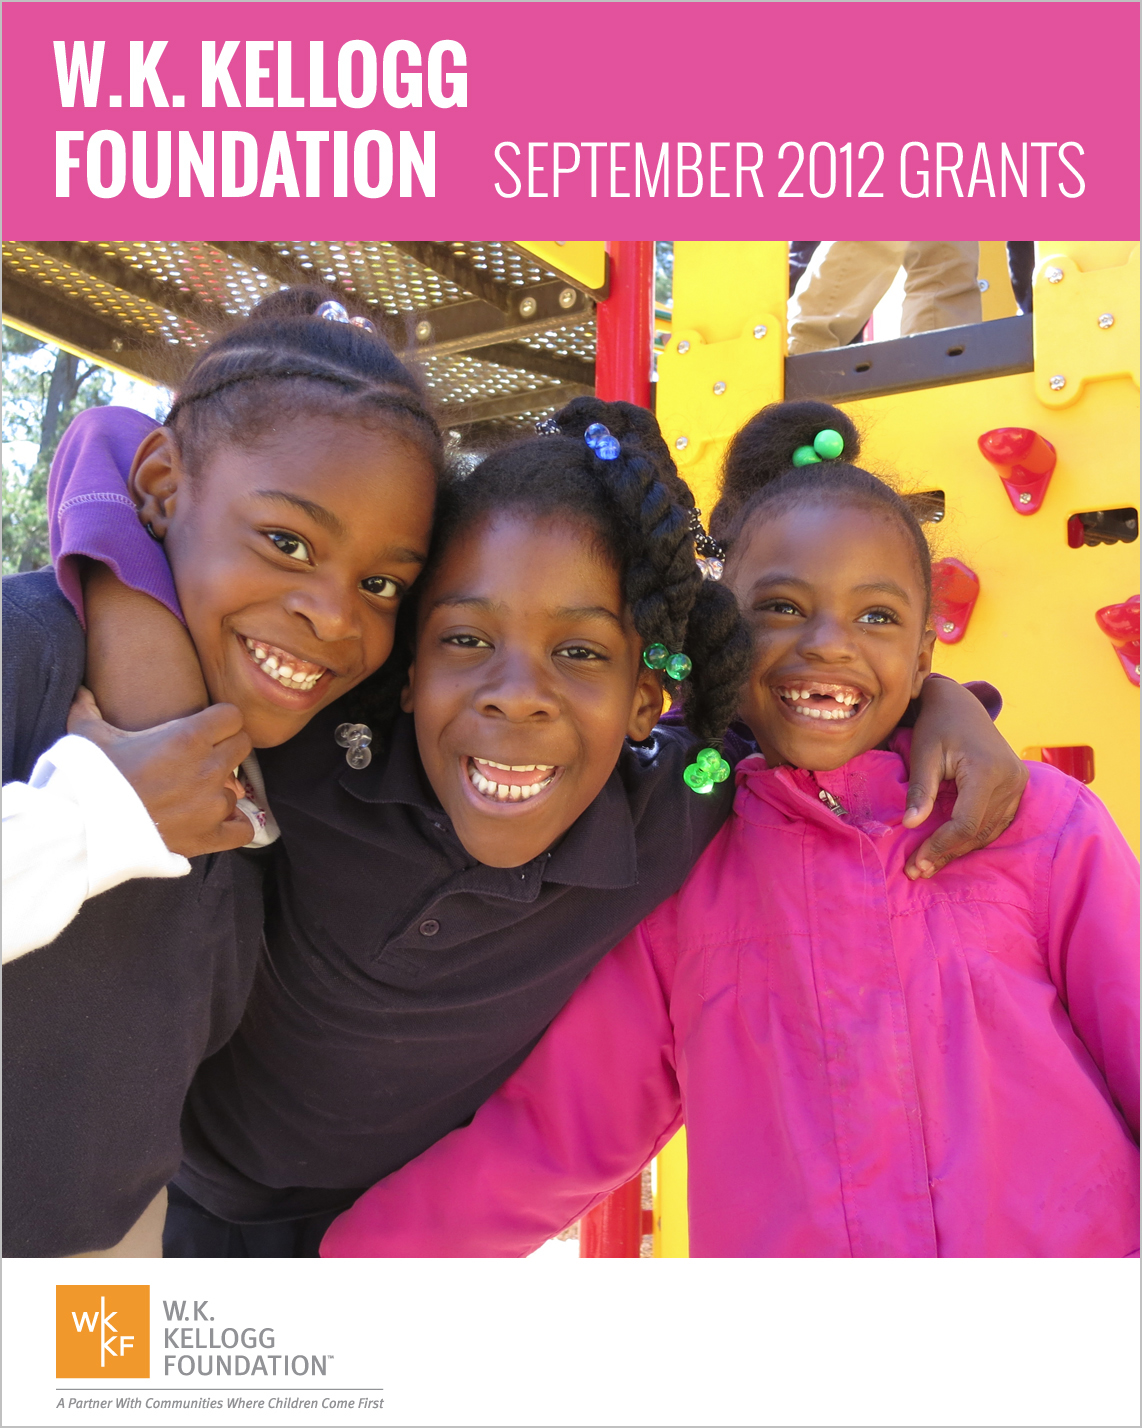 W.K. Kellogg Foundation Grants - September 2012